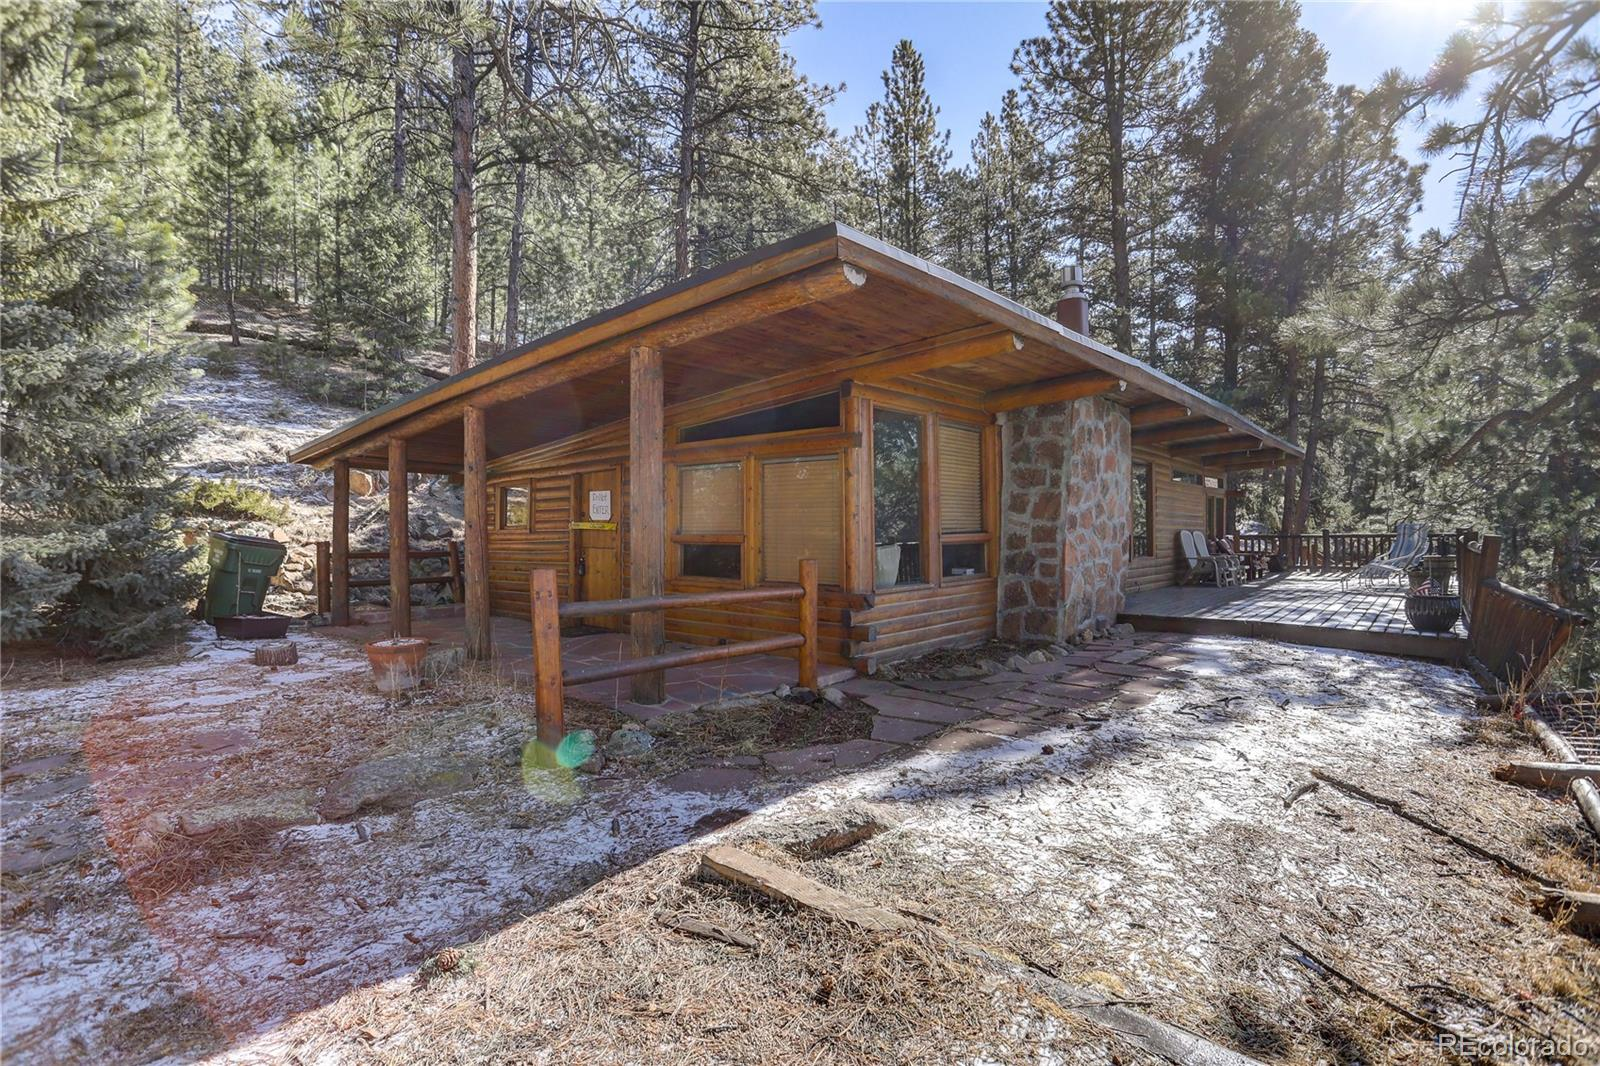 MLS# 2586676 - 1 - 5076 Camel Heights Road, Evergreen, CO 80439